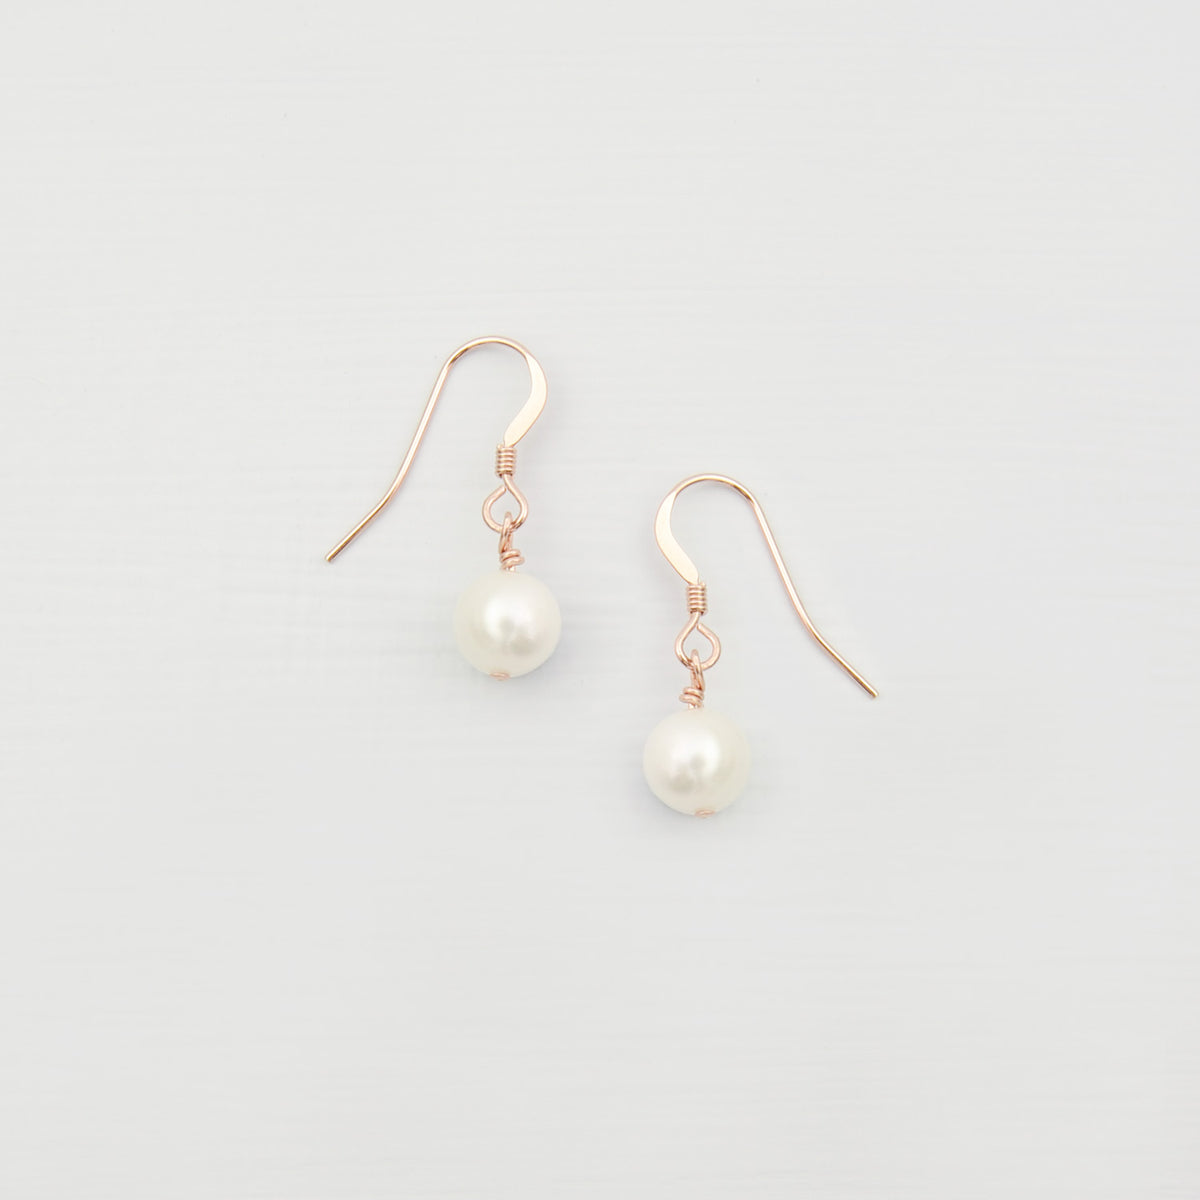 freshwater pearl drop earrings rose gold filled